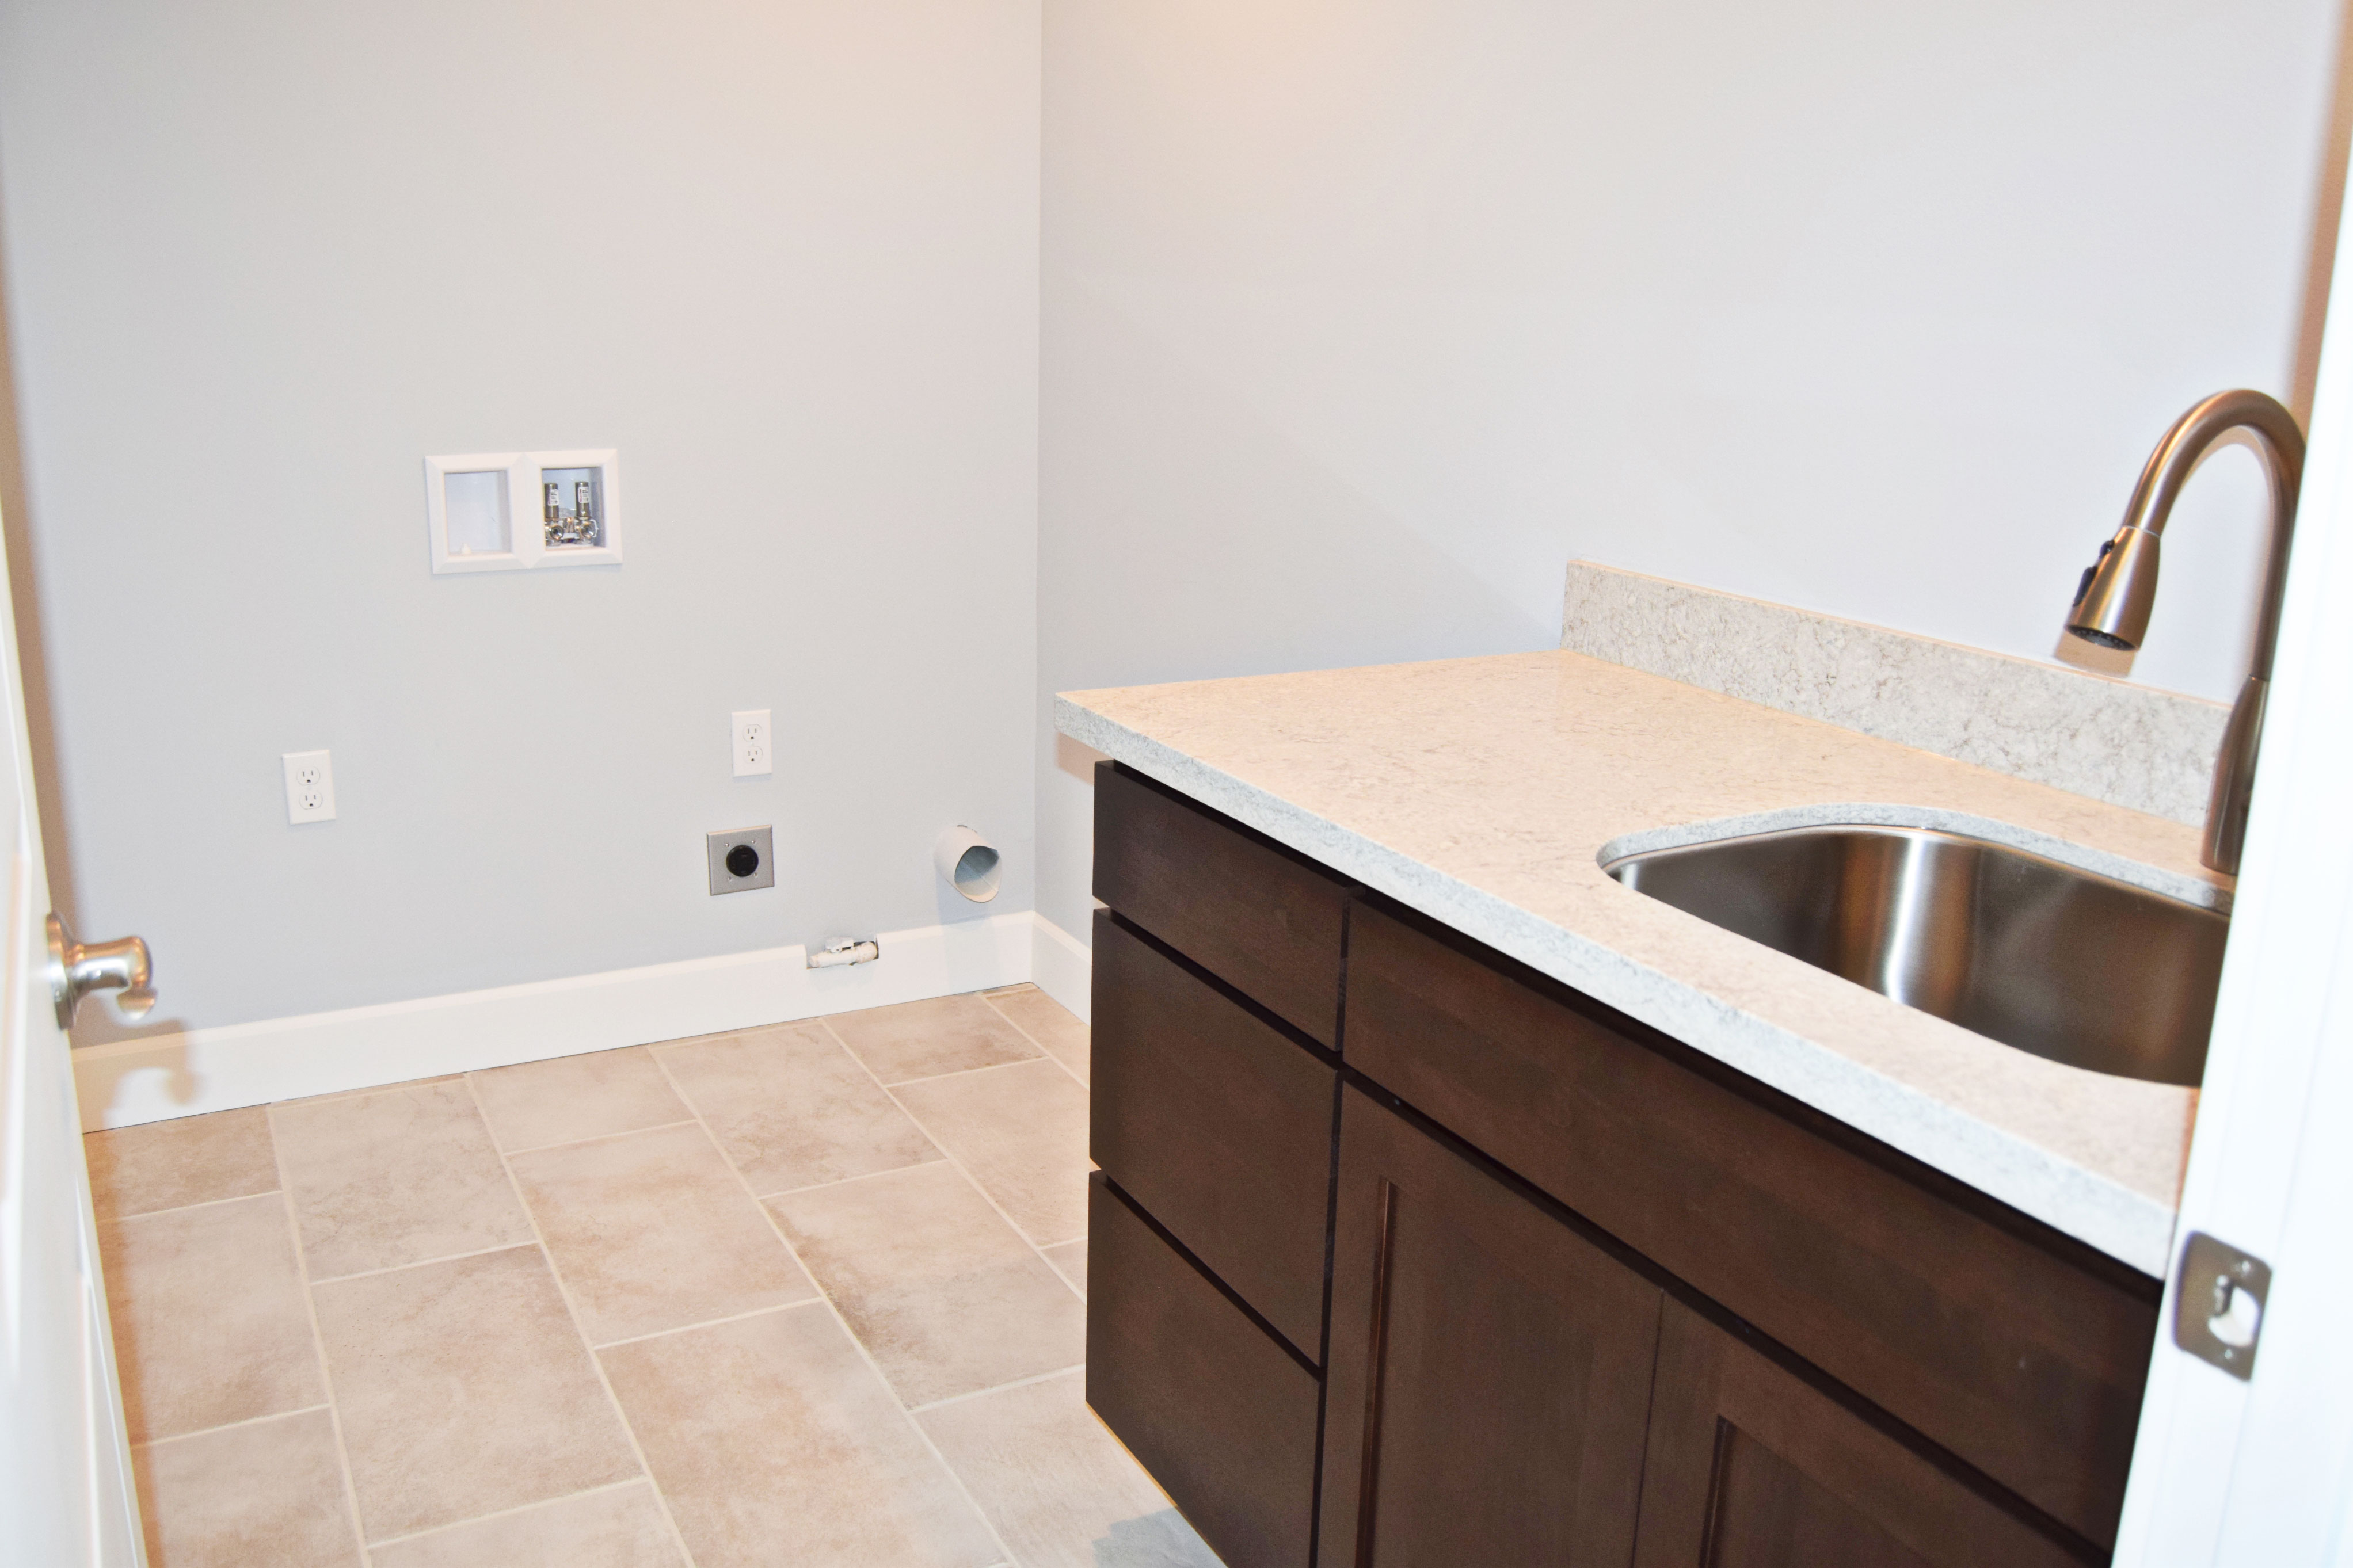 View Of The Laundry Room (sans Appliances) And Custom Built Cabinet For  Laundry Utility Sink.